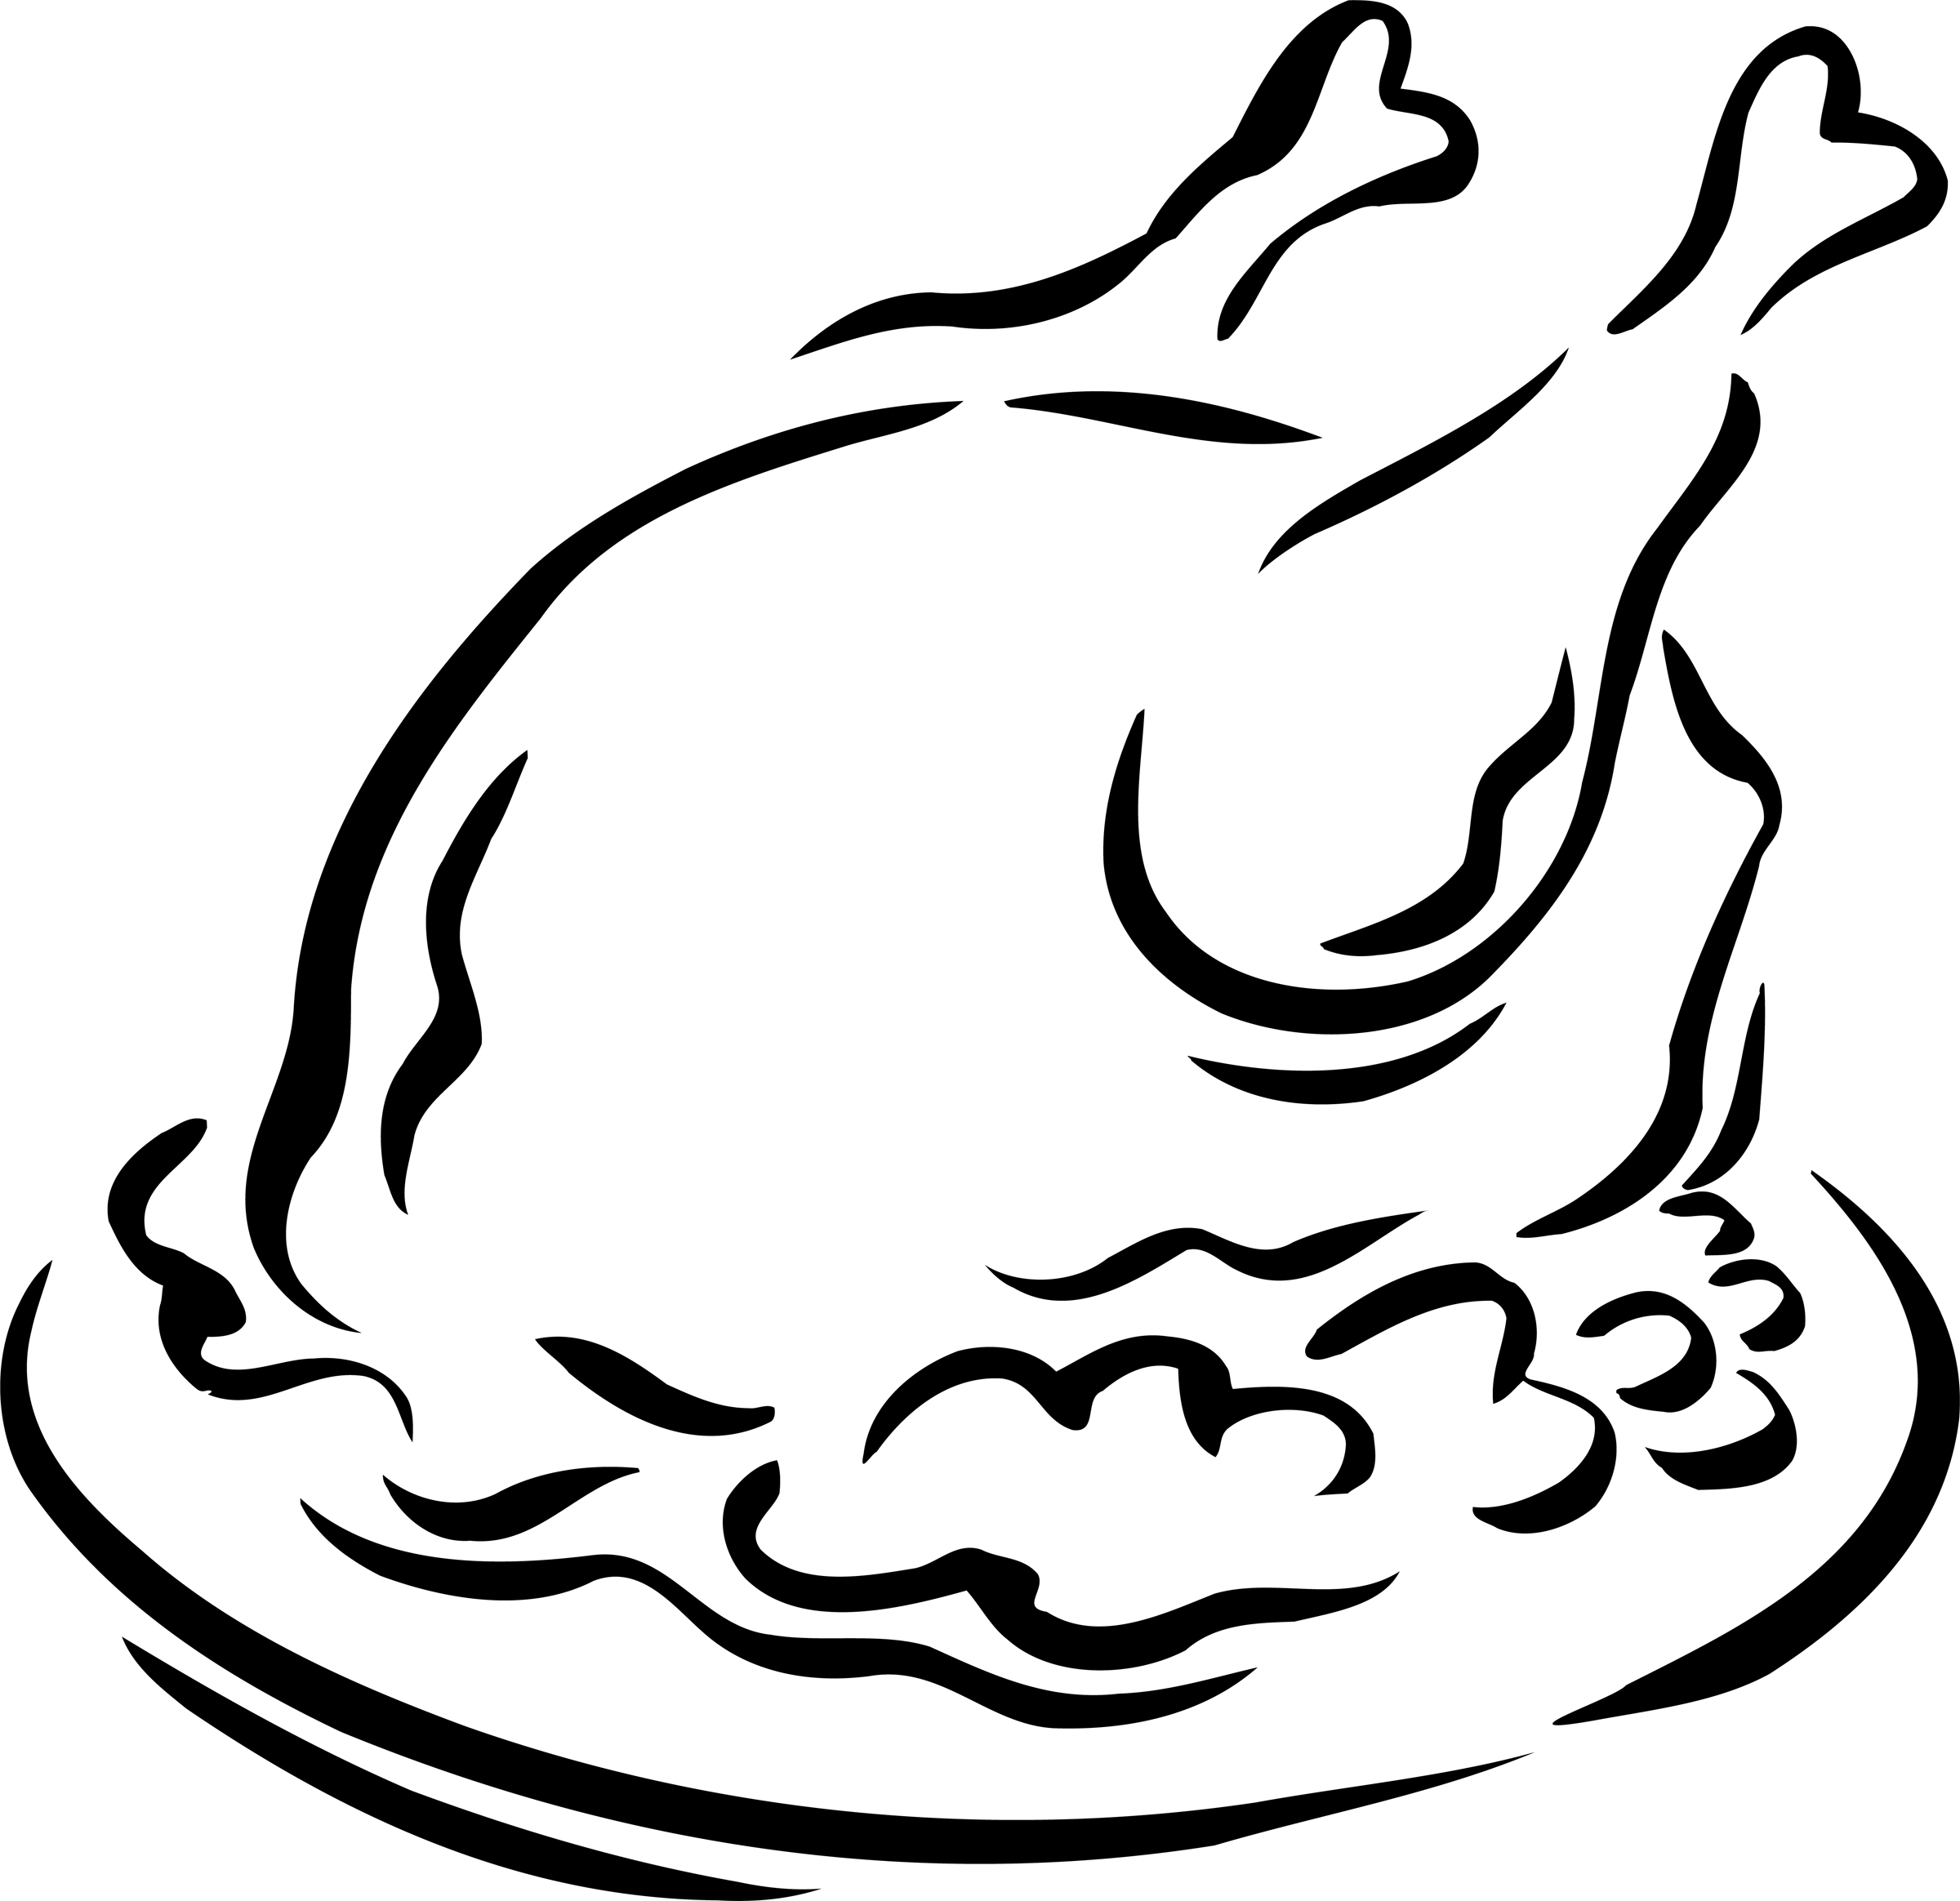 2400x2328 Turkey Black And White Cooked Turkey Clipart Black And White